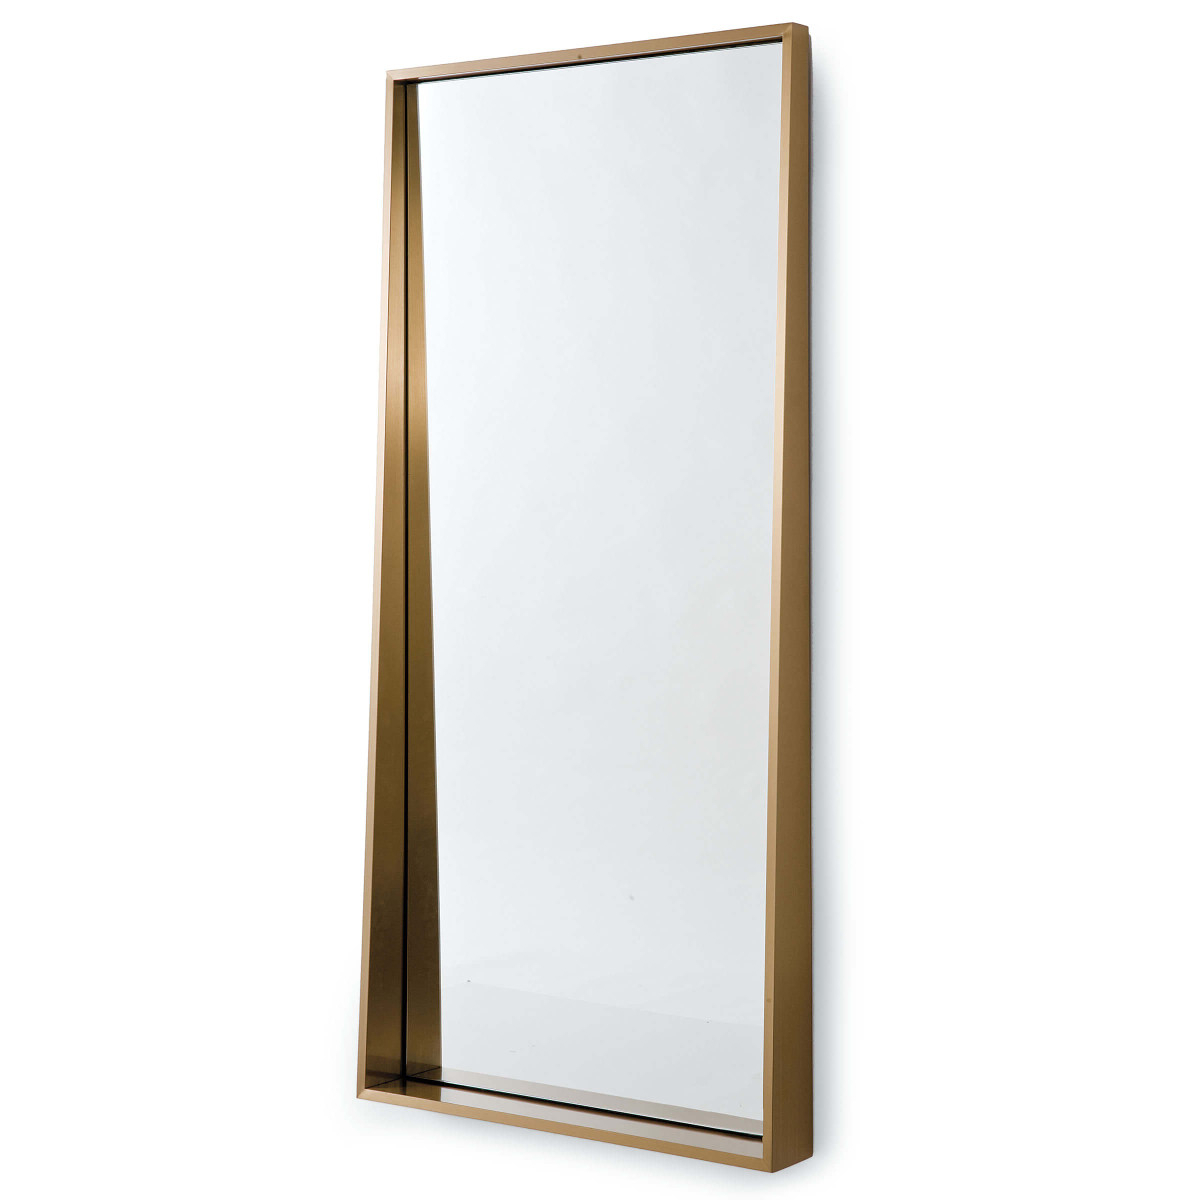 Best And Newest Angled Wall Mirrors In Brass Angled Wall Mirror (View 6 of 20)